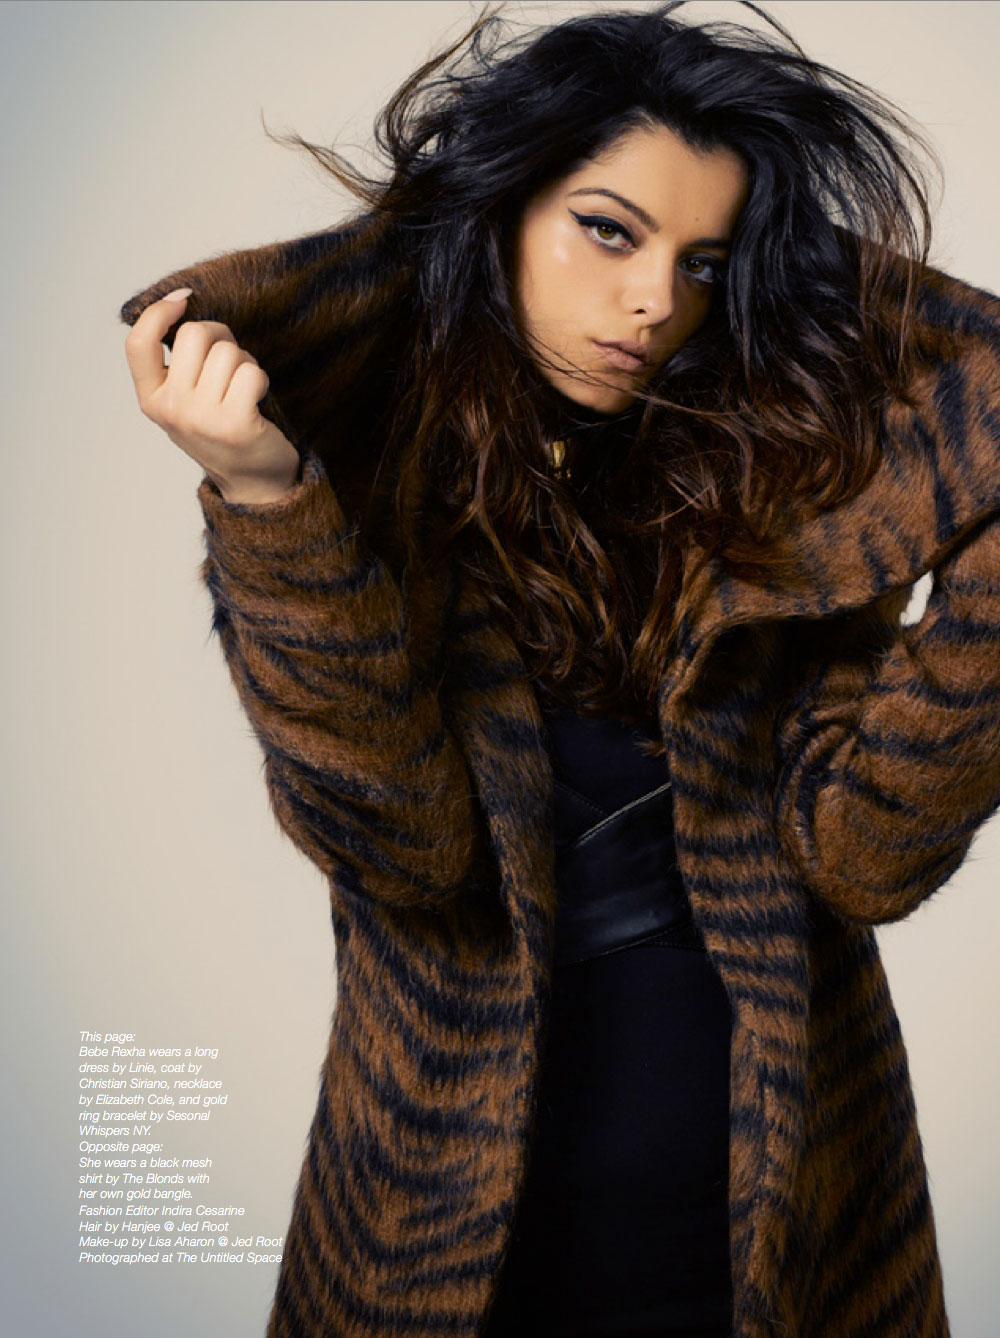 Bebe Rexha - Indira Cesarine - The Untitled Magazine Issue 8_1